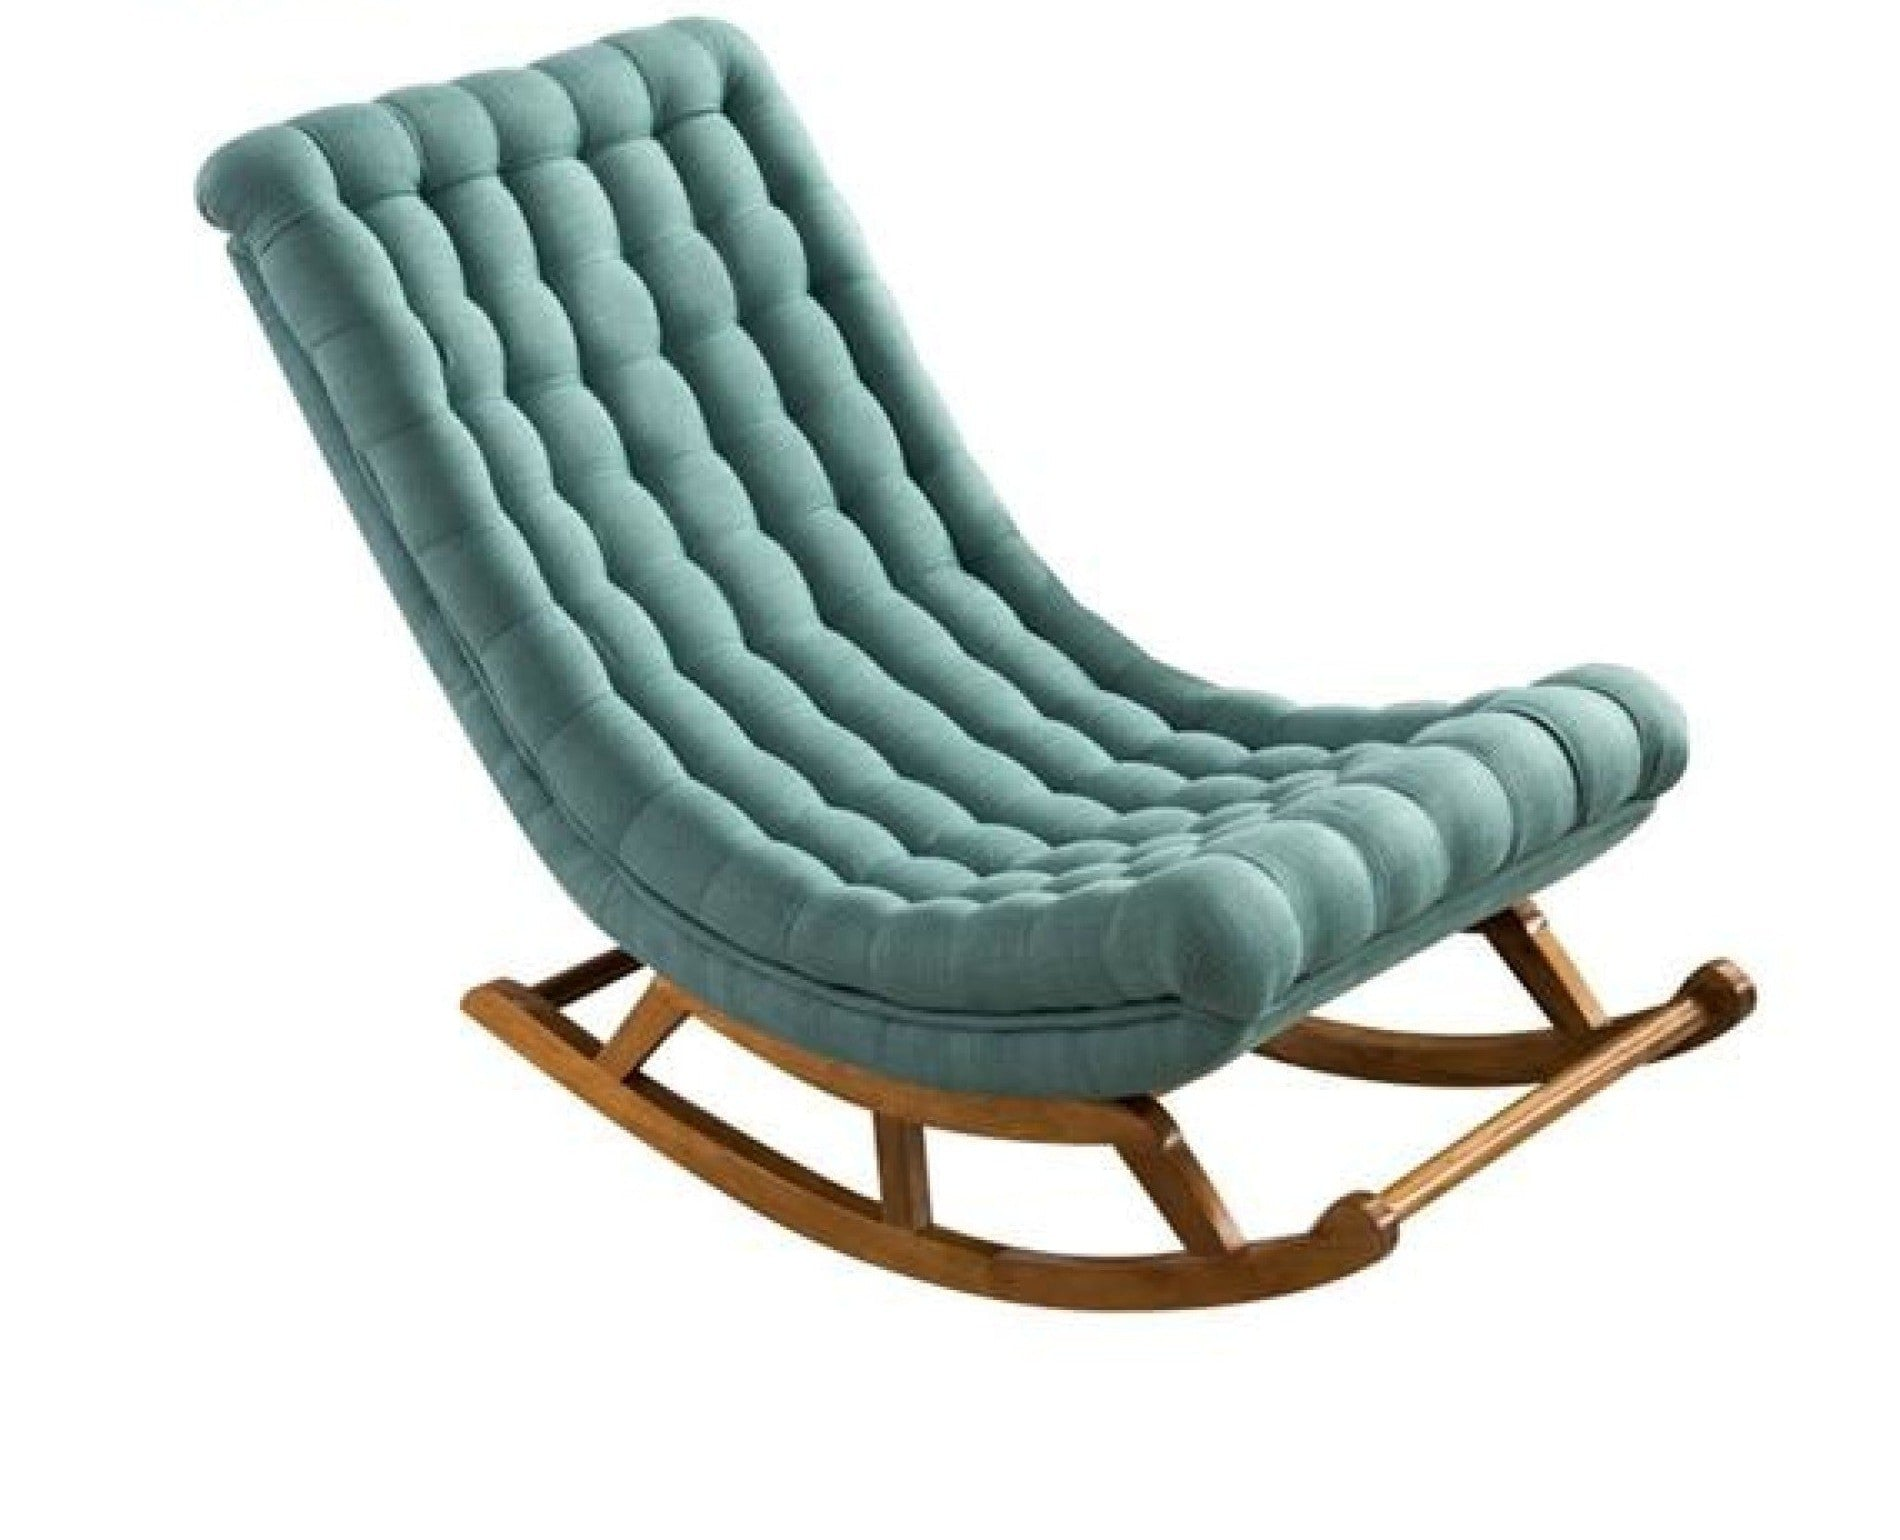 Wooden Lounge Chair For Cozy Sleep My Aashis